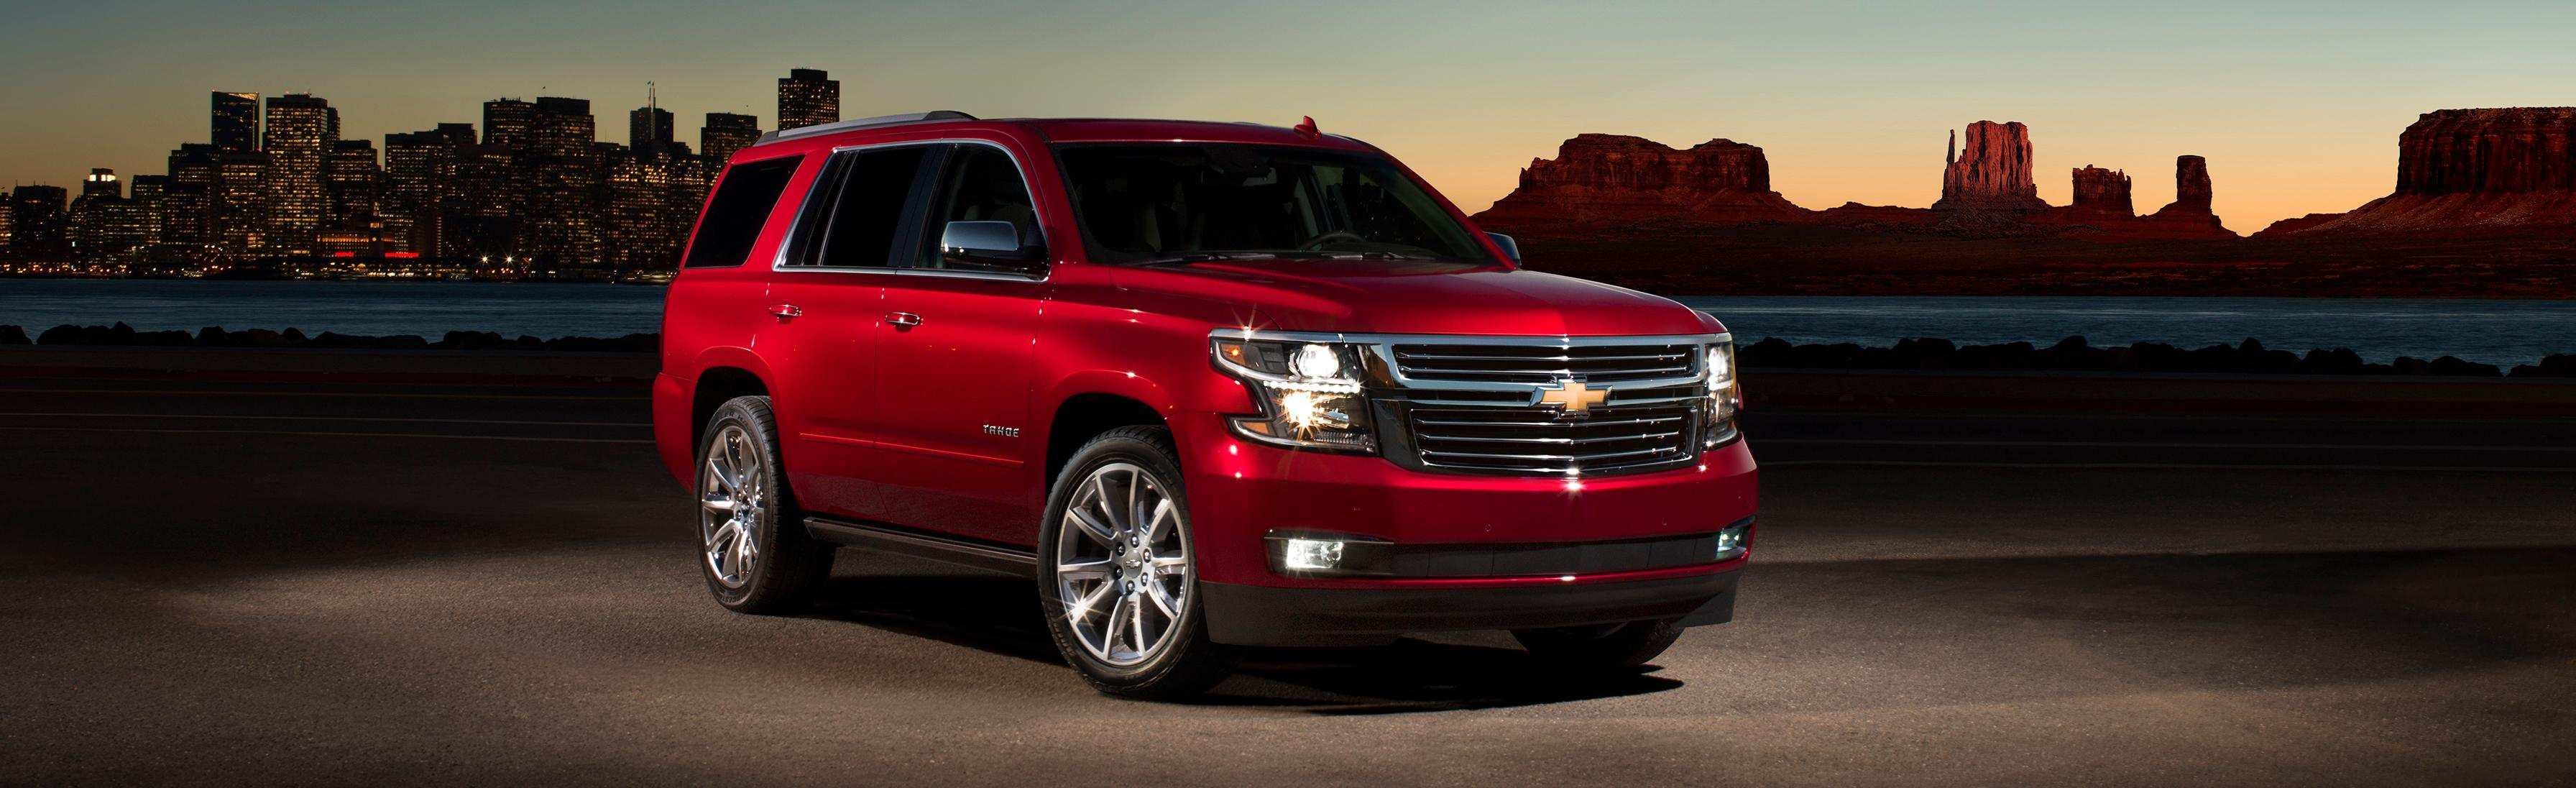 38 A 2019 Chevrolet Tahoe Concept